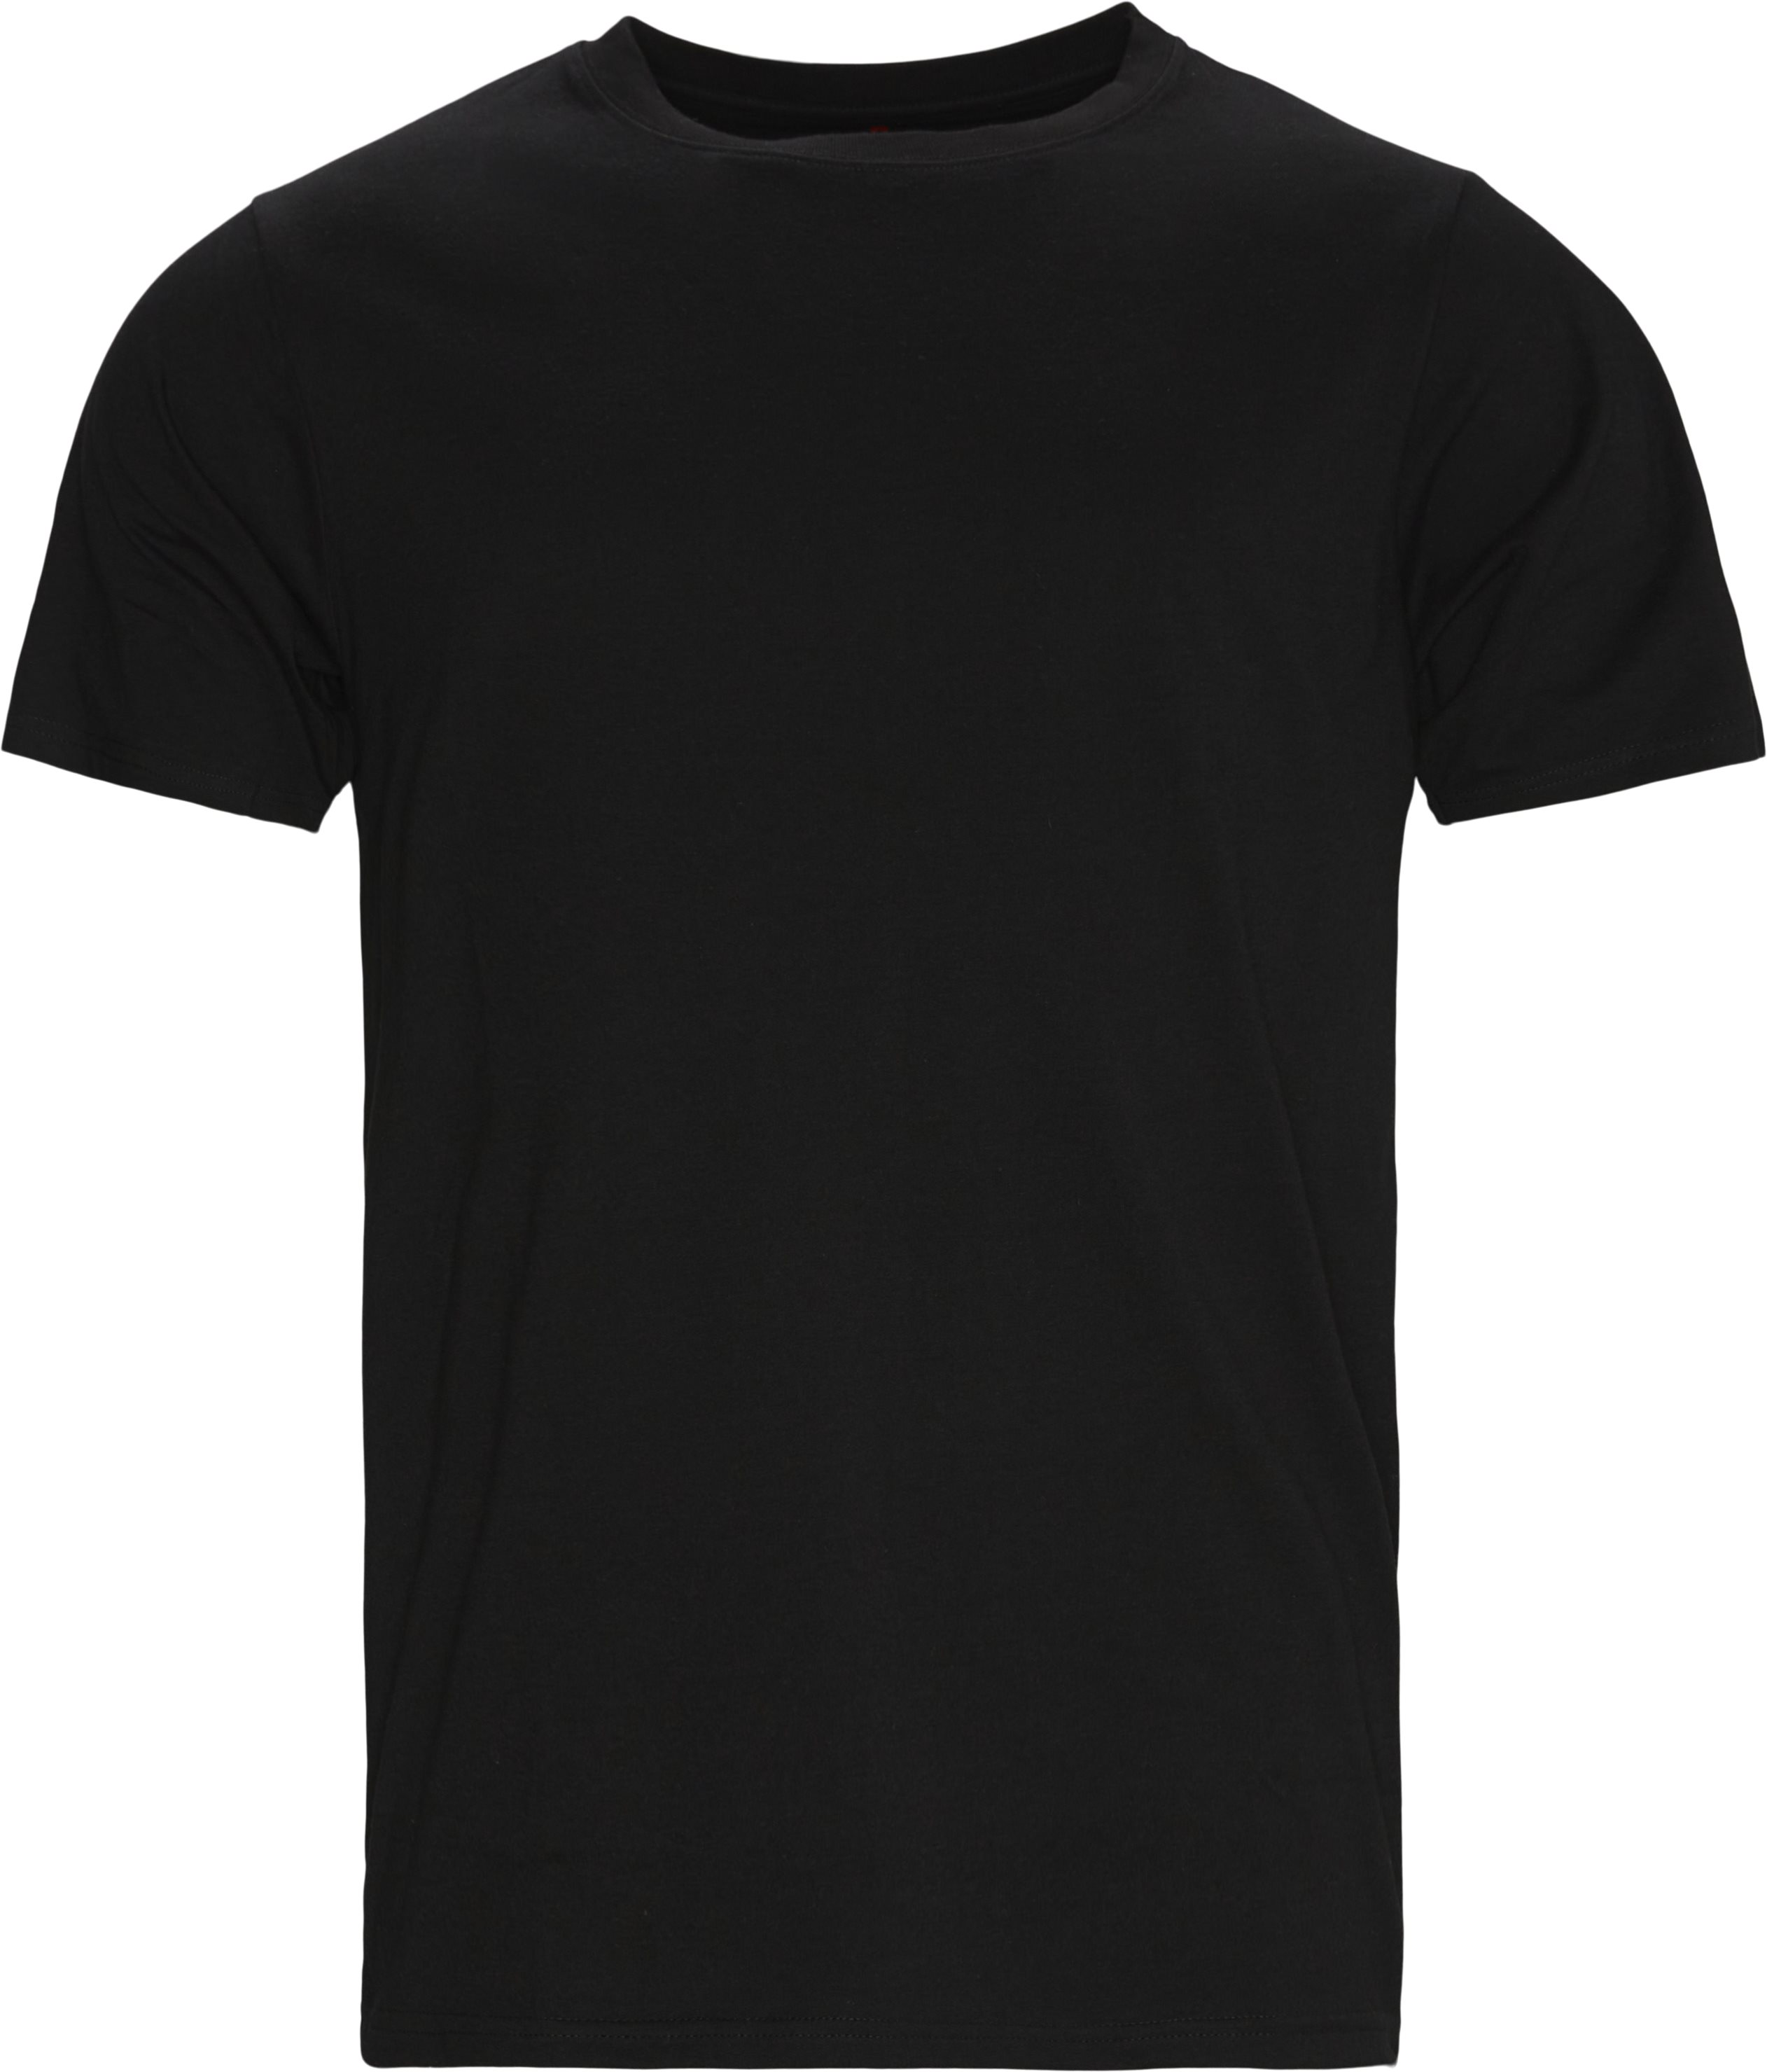 Pau Tee - T-shirts - Black